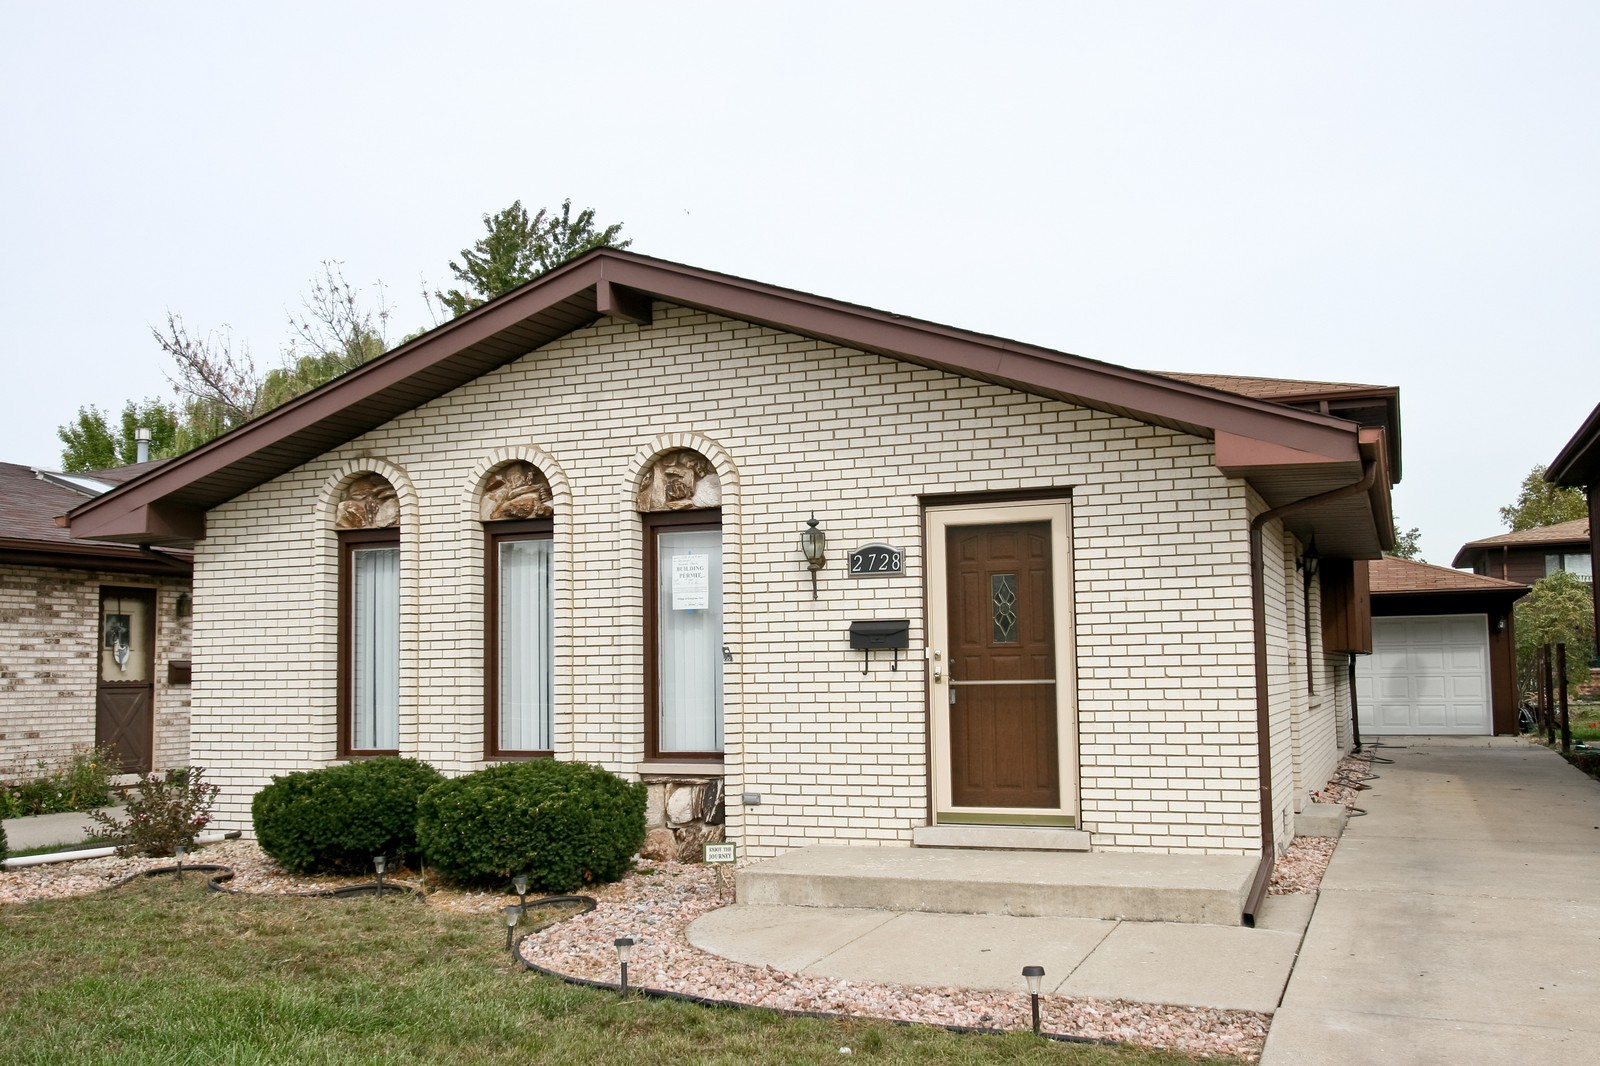 Real Estate Photography - 2728 W 91st St, Evergreen Park, IL, 60805 - Front View